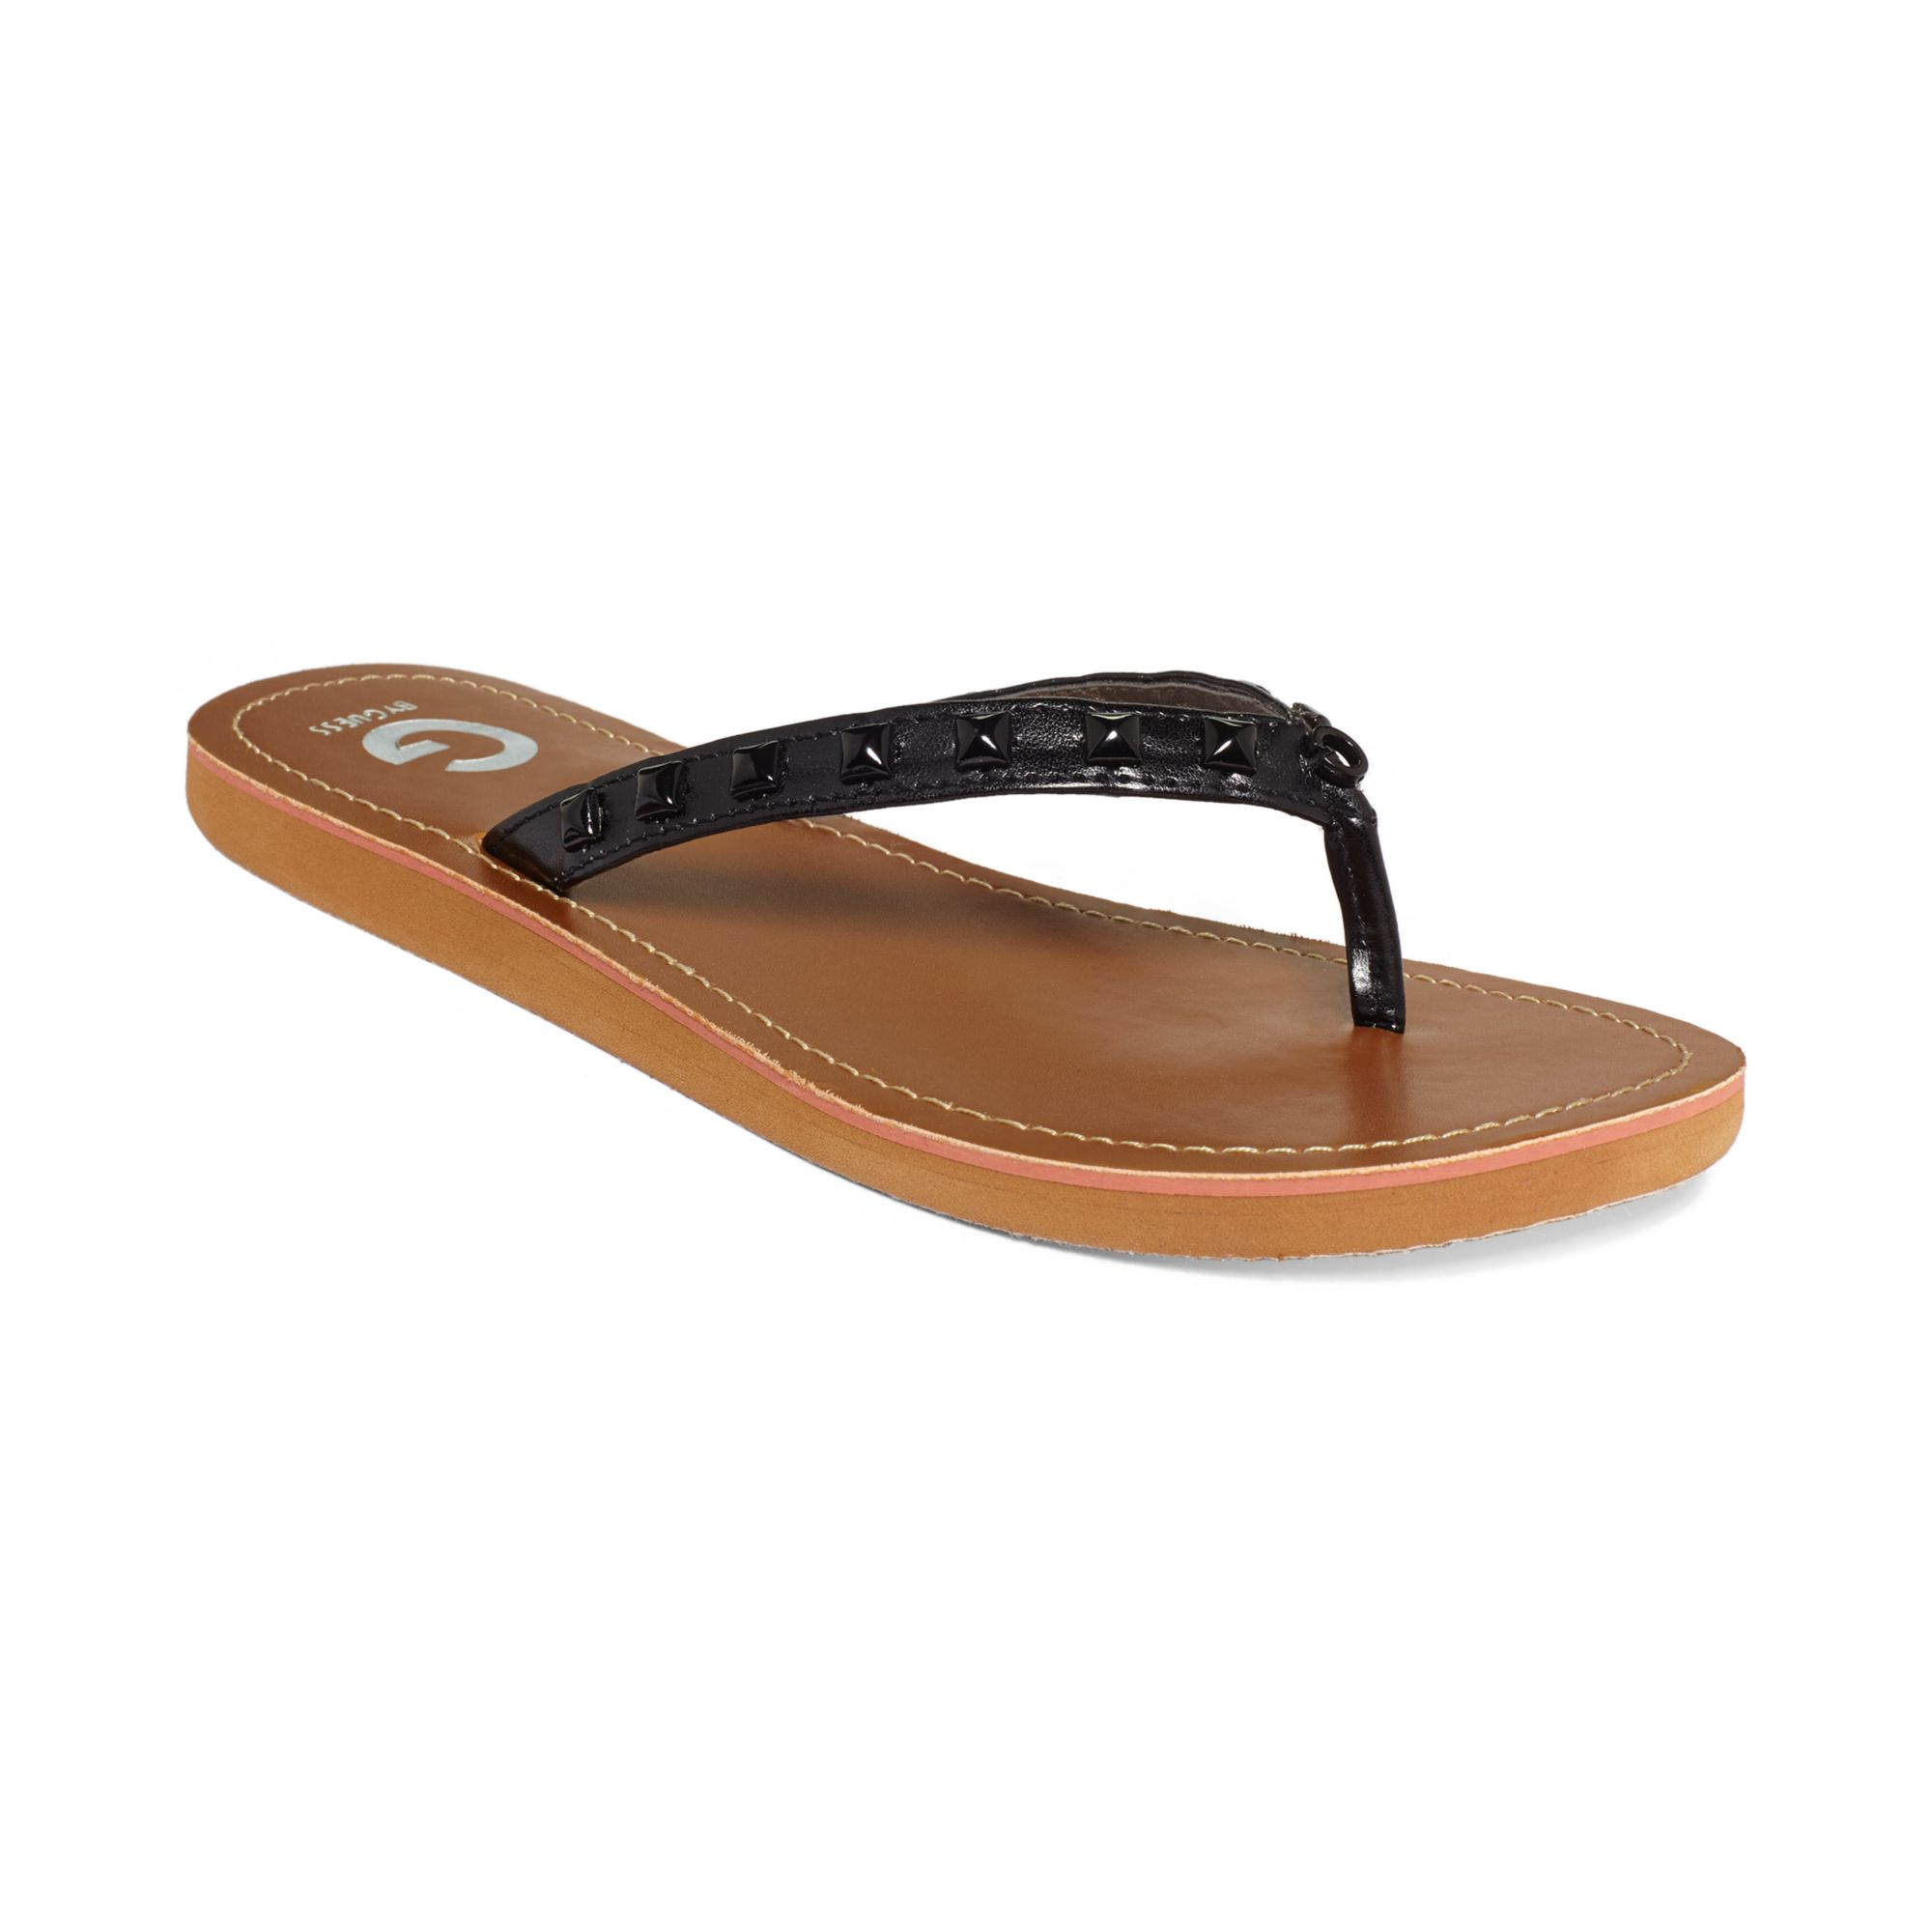 7059cd0a768806 Lyst - G by Guess Womens Kendrah Studded Flip Flops in Black